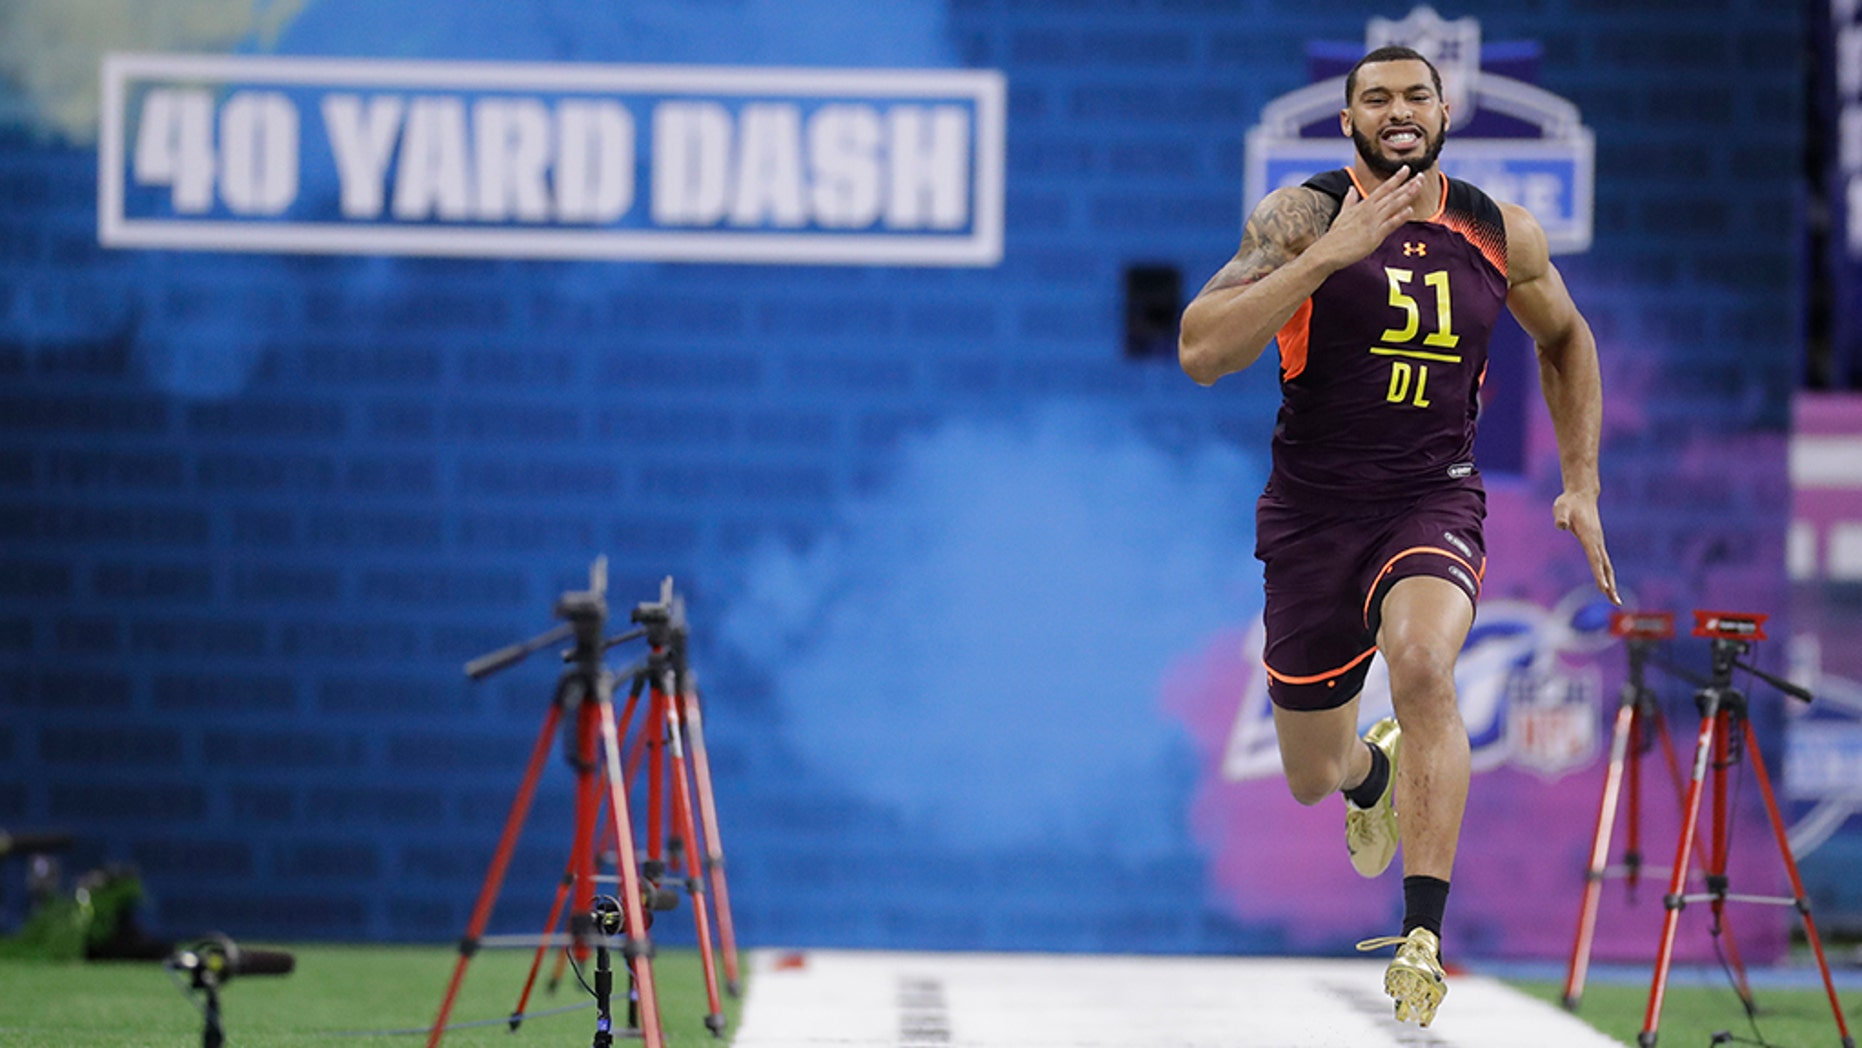 Mississippi State defensive lineman Montez Sweat runs a 40-yard lurch during a NFL football scouting brew Sunday in Indianapolis. (AP Photo/Darron Cummings)